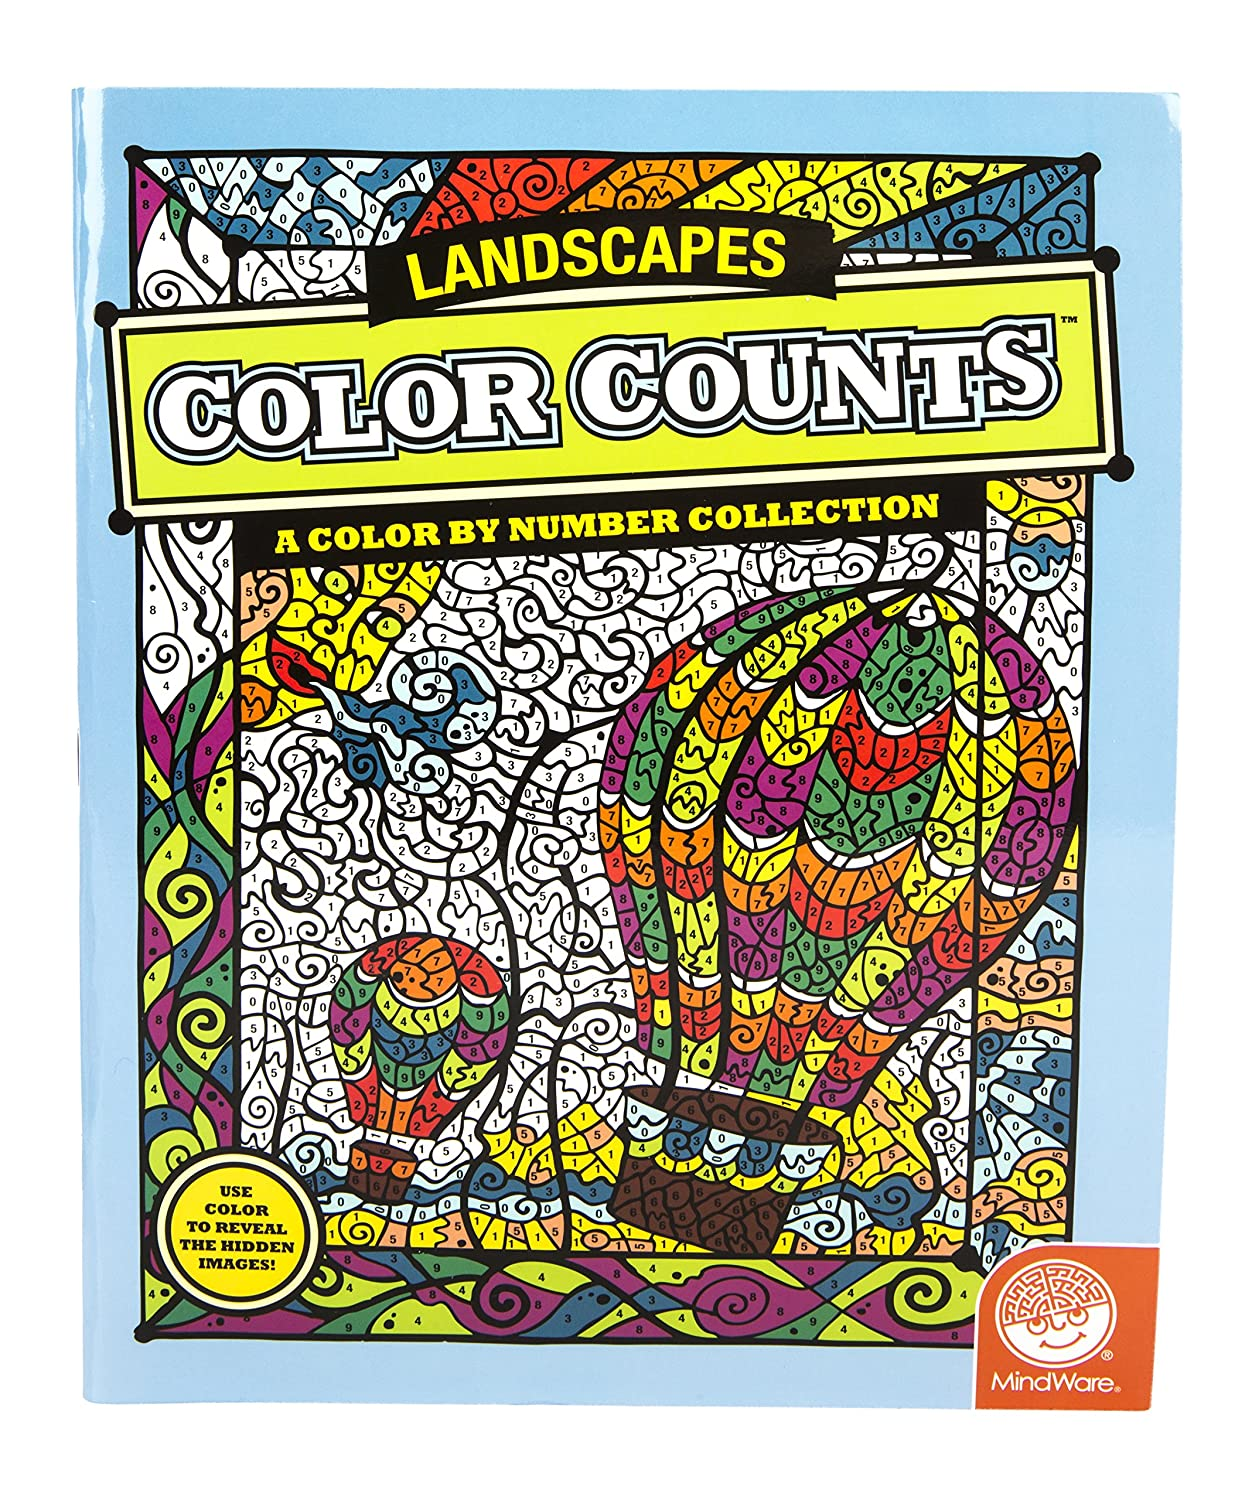 amazoncom color counts landscapes toys games - Mindware Coloring Books